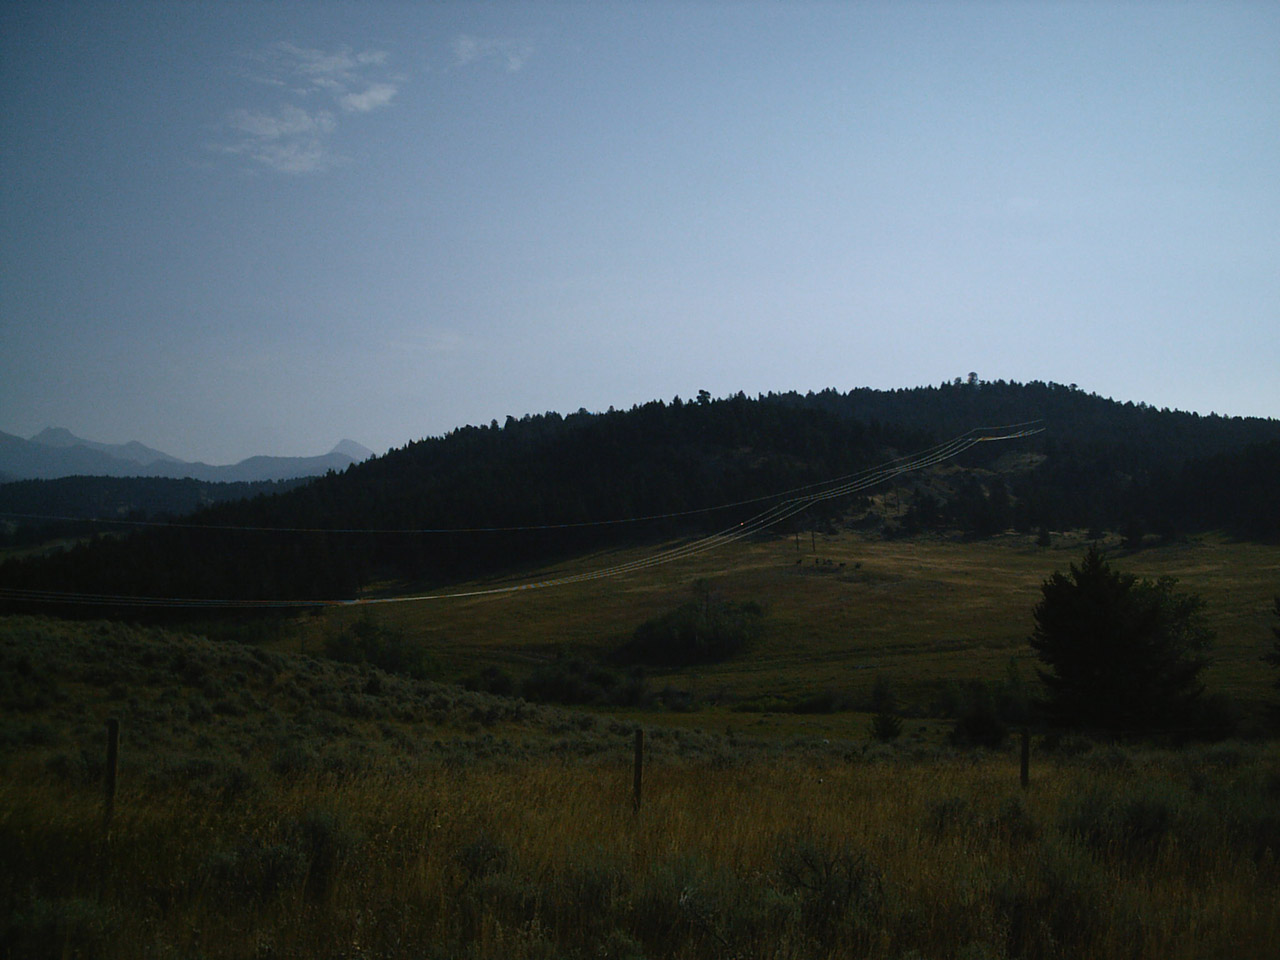 mountain ranch dating site Brush mountain ranch offers guided hunts for large elk and deer in northwest colorado features great accommodations, mountain views and top-notch service.